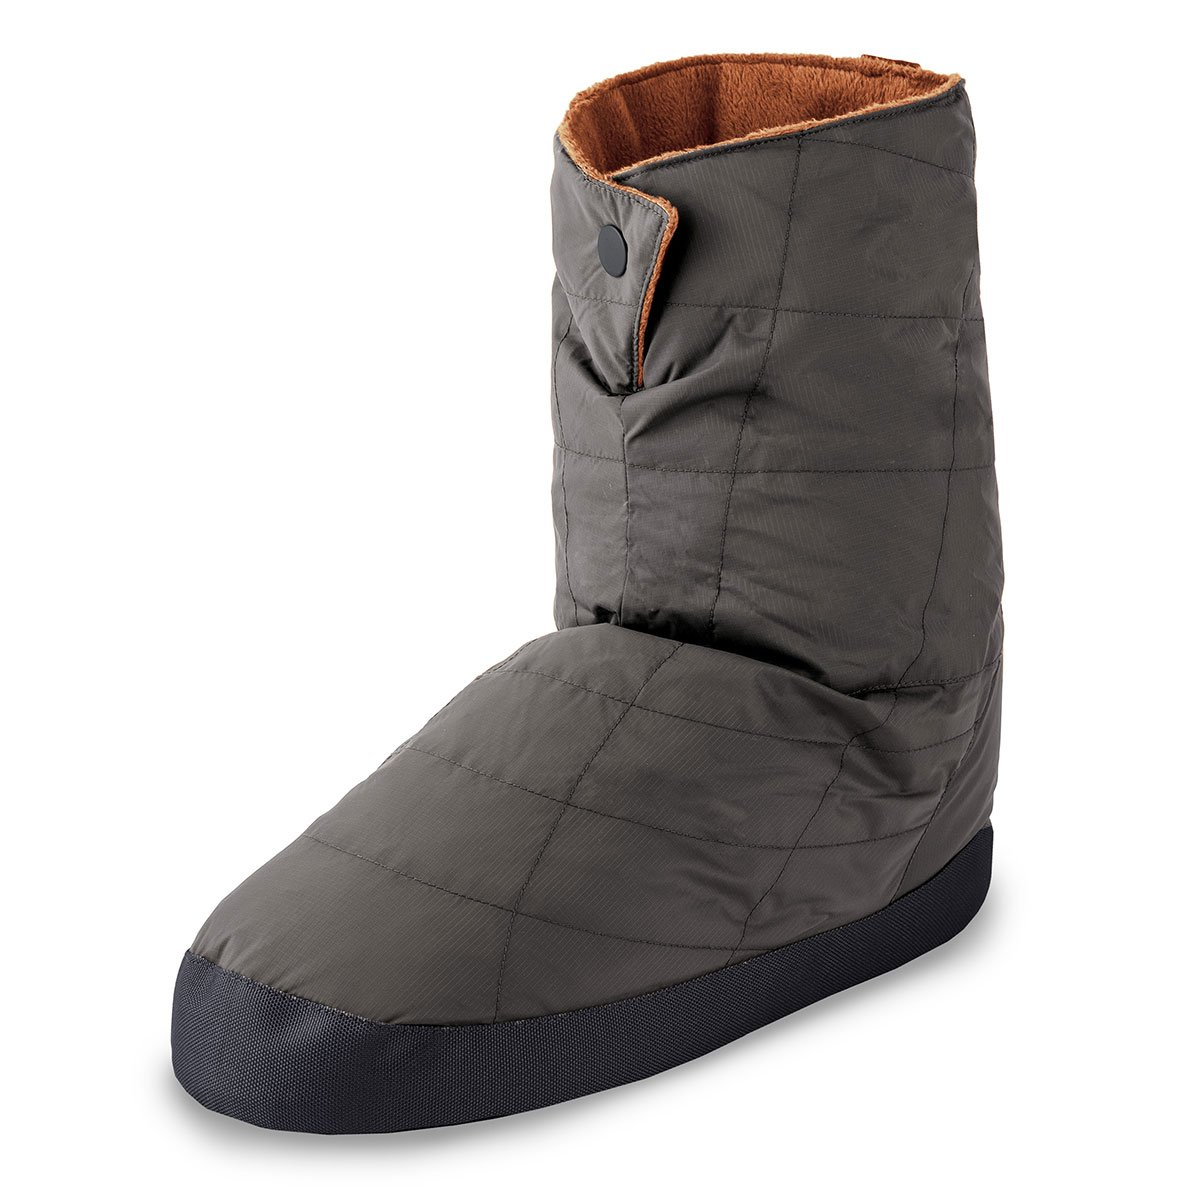 Cabiniste Men's Down Insulated Bootie (Medium, Pewter/Copper)